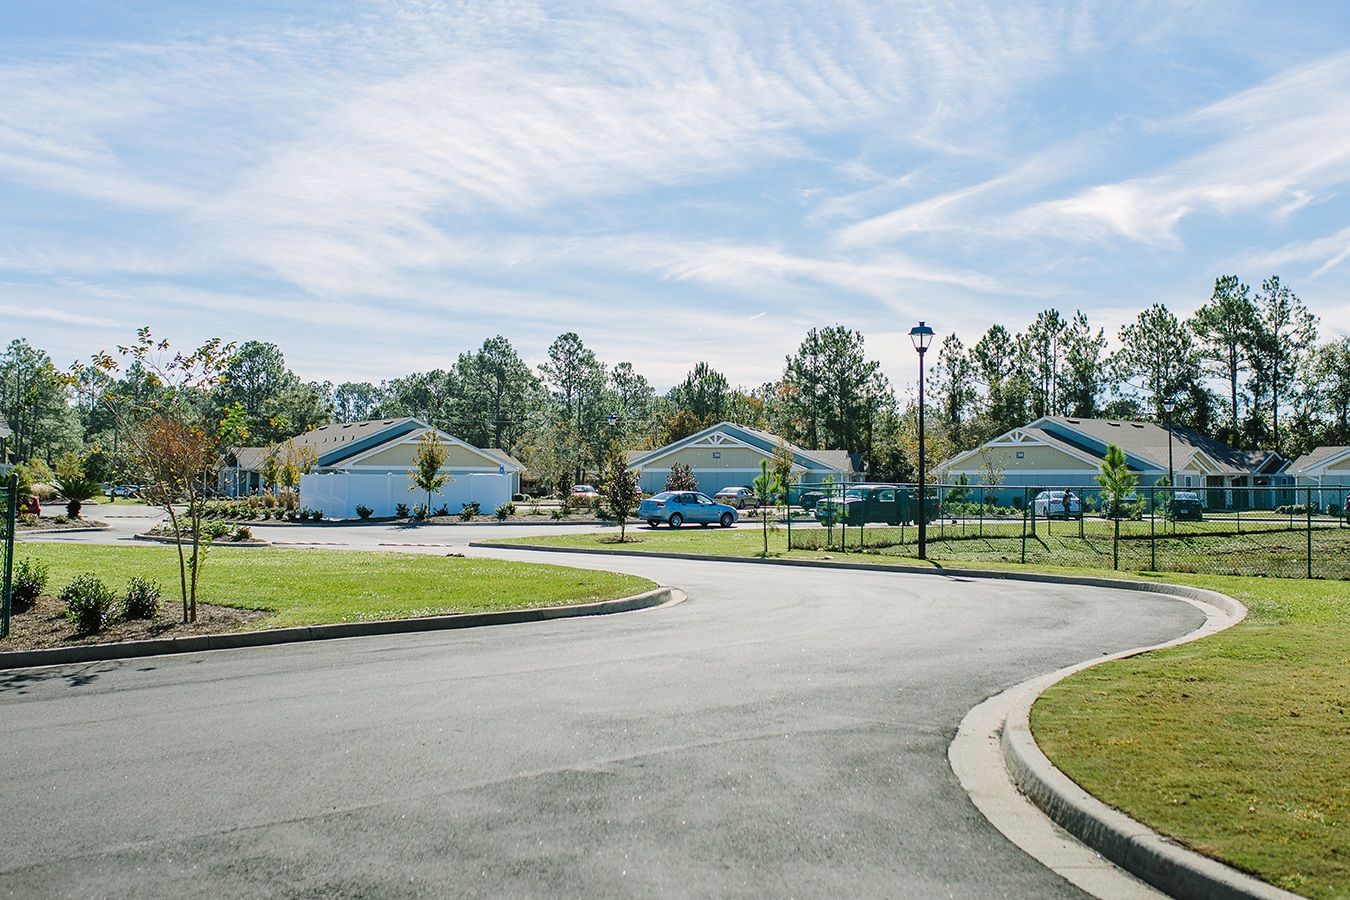 Ashton Cove - KINGSLAND, GEORGIAAshton Cove Apartments is a 72 unit renovated affordable housing property in Kingsland, Georgia. The property offers one, two and three bedrooms options.